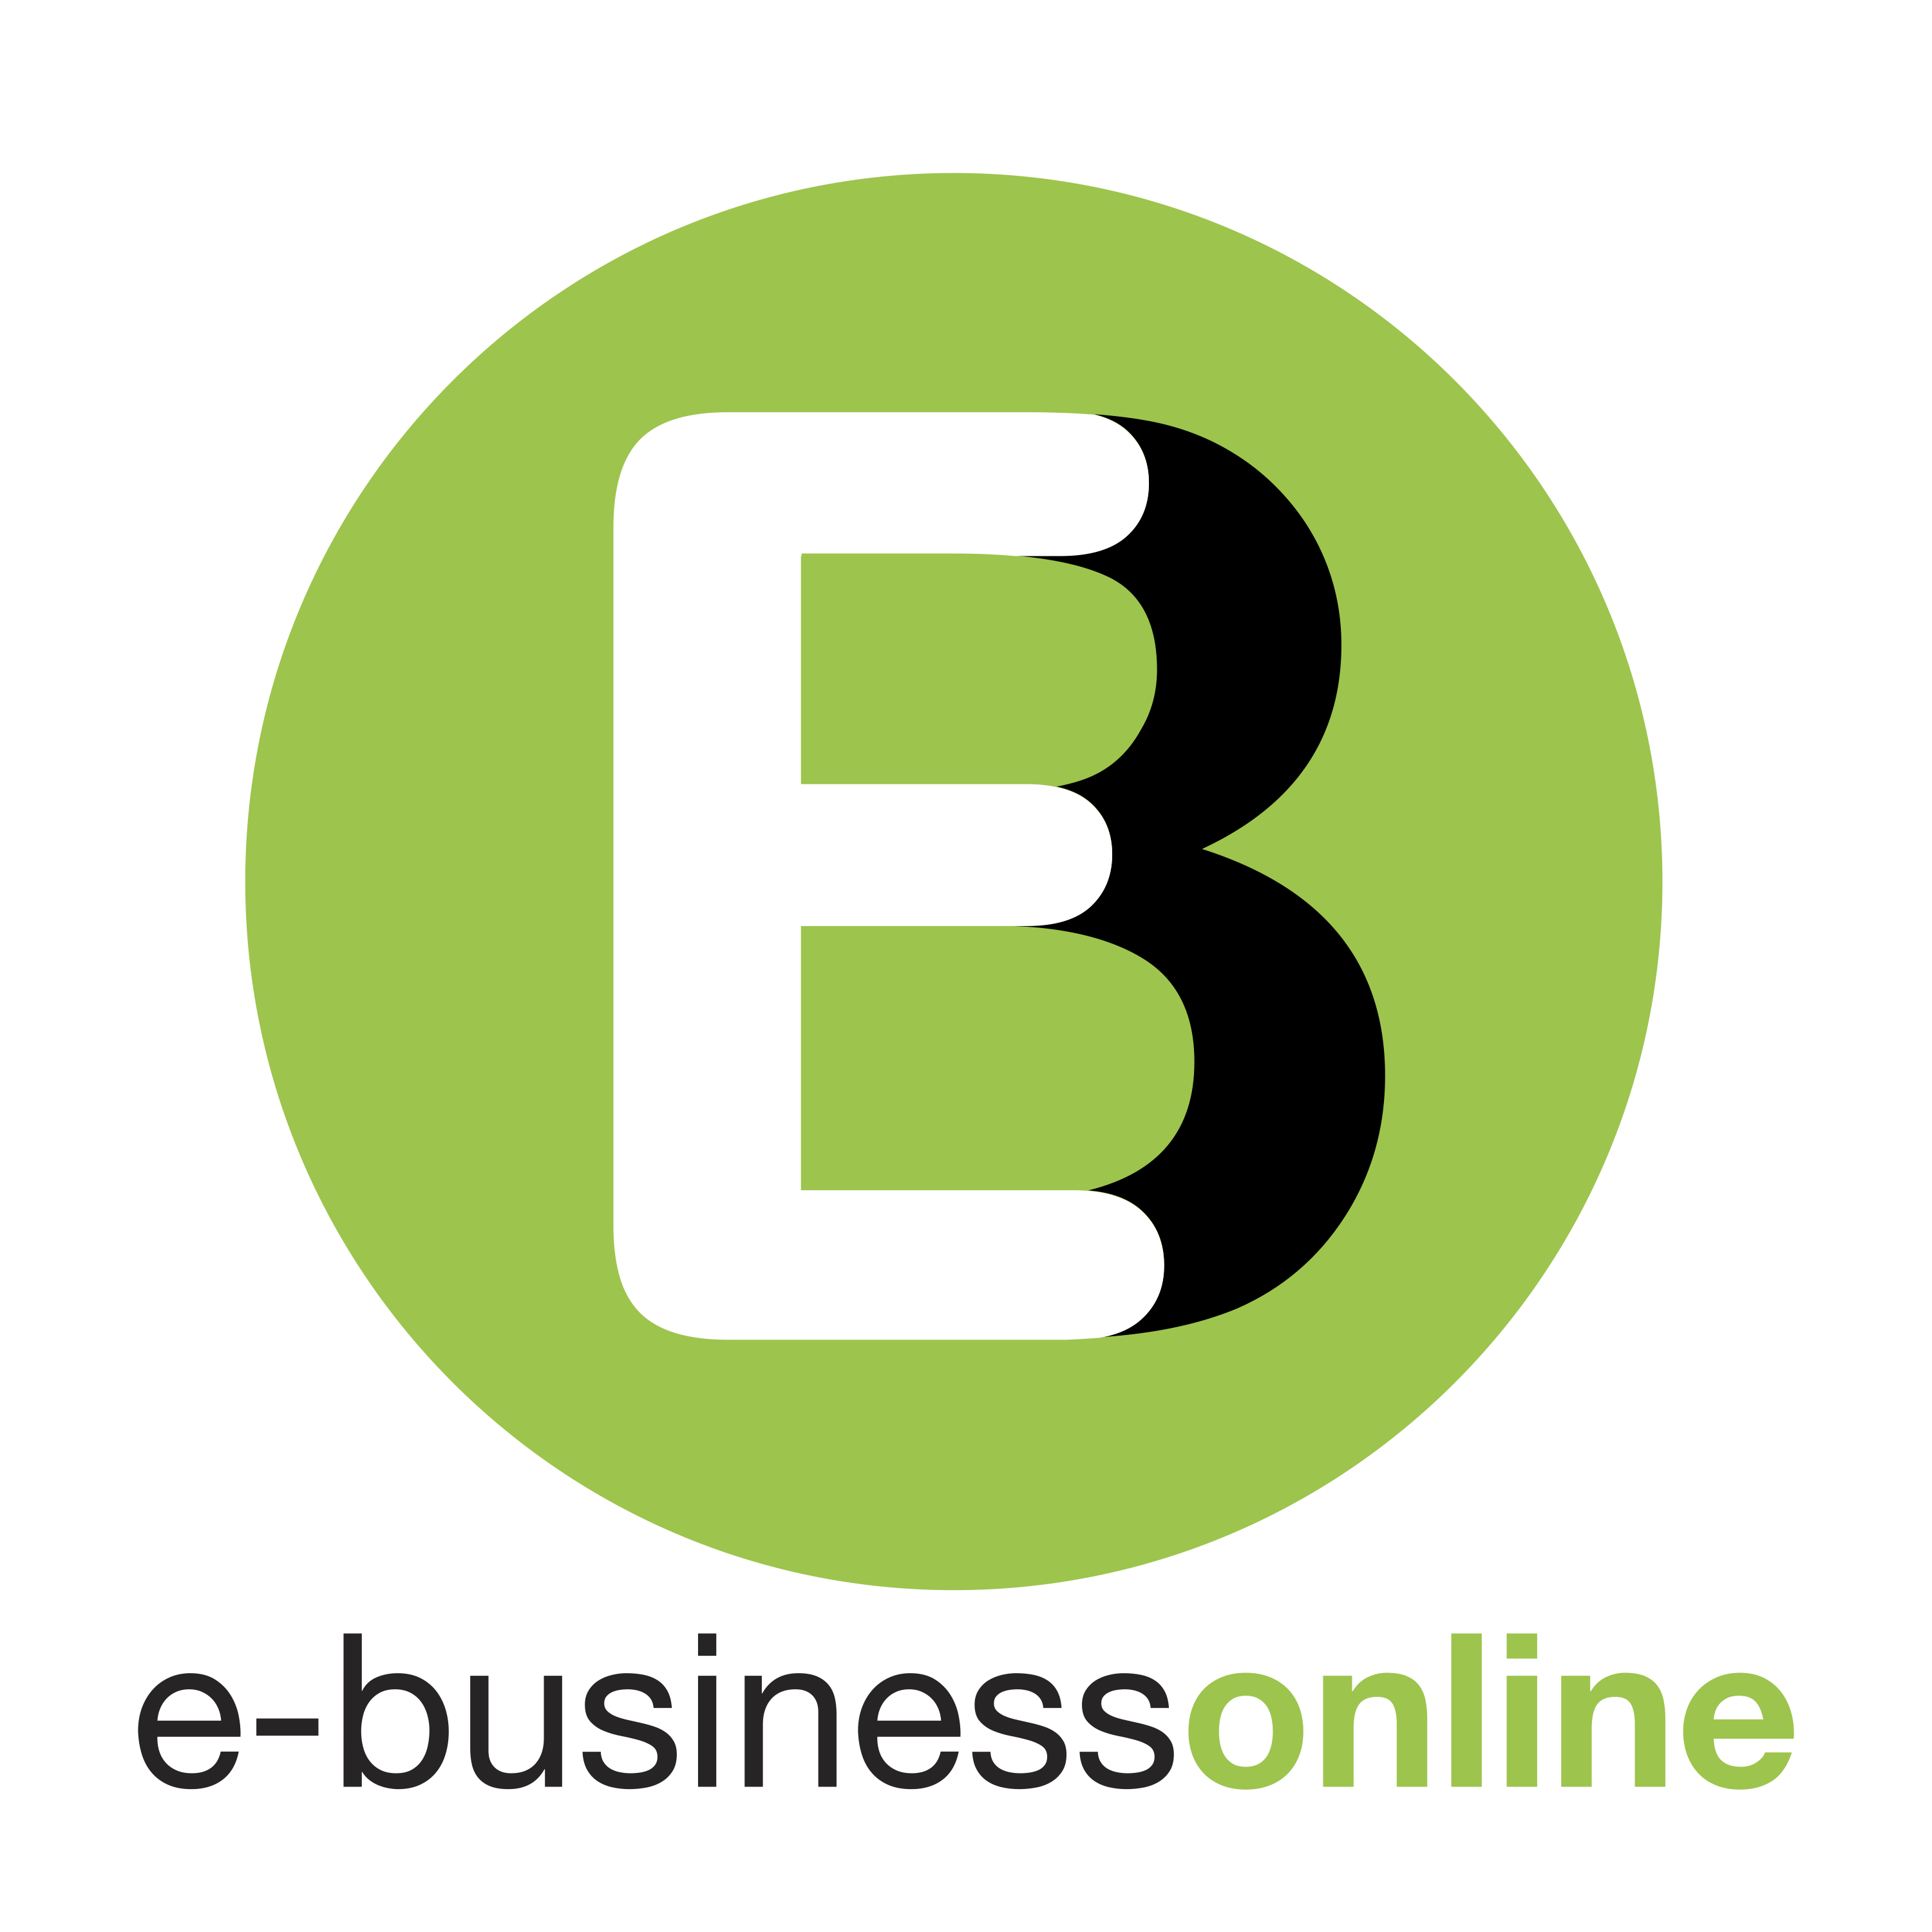 E-BusinessOnline E-Commerce Podcast - Discussing Ecommerce and E-Business